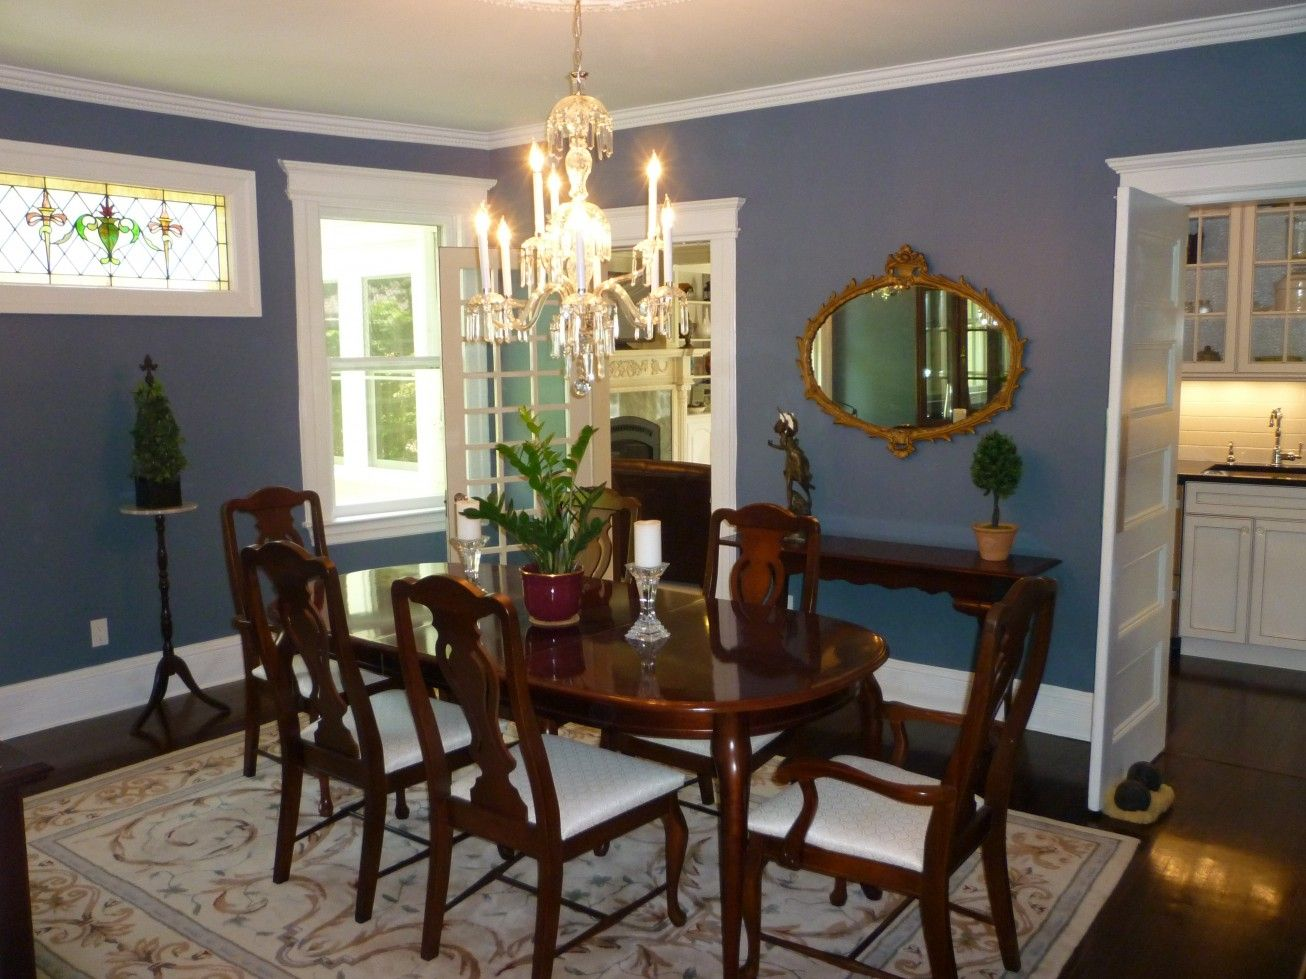 Dark Blue And White Wall Color For Dining Room Decorating